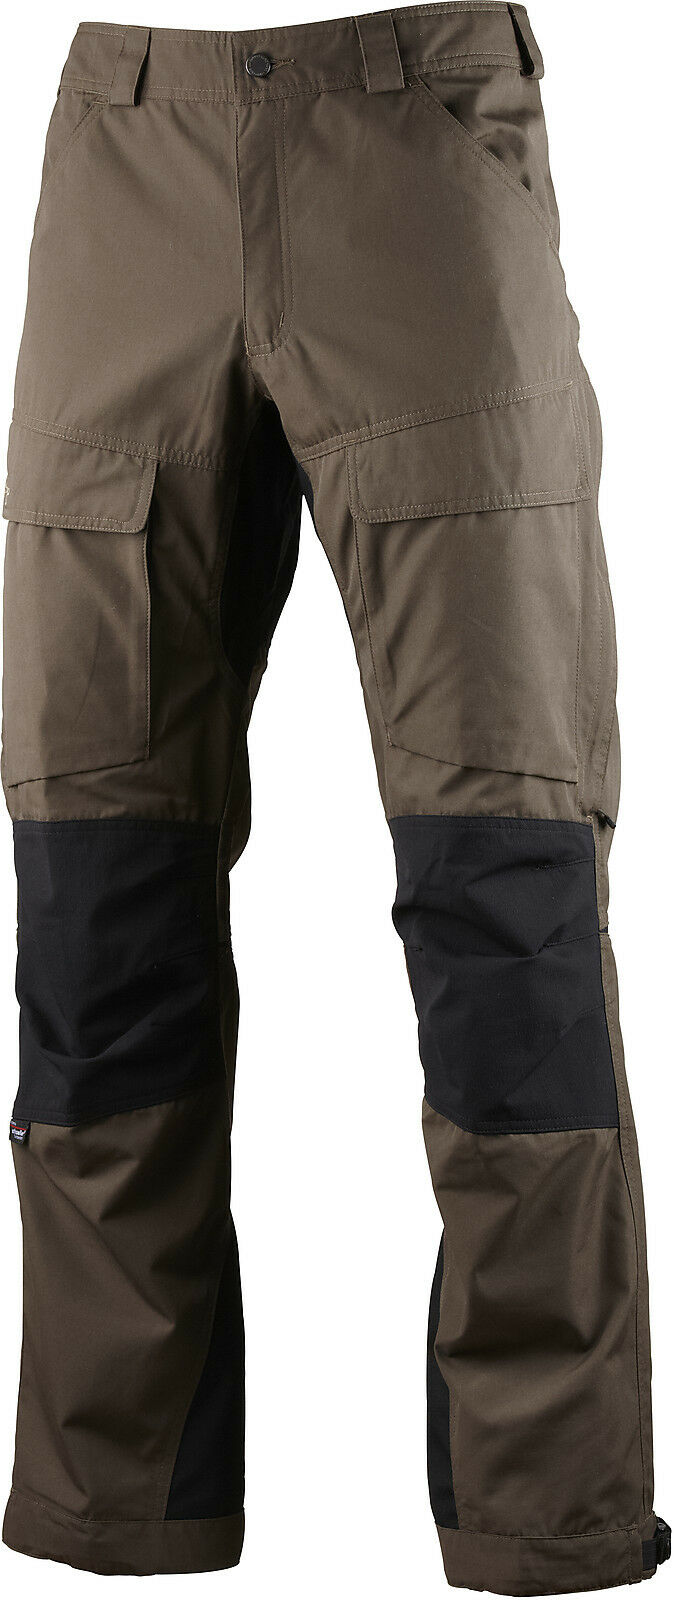 LUNDHAGS AUTHENTIC Pant, Regular, Tea verde, Trekking Pantaloni con stretcheinsätzen